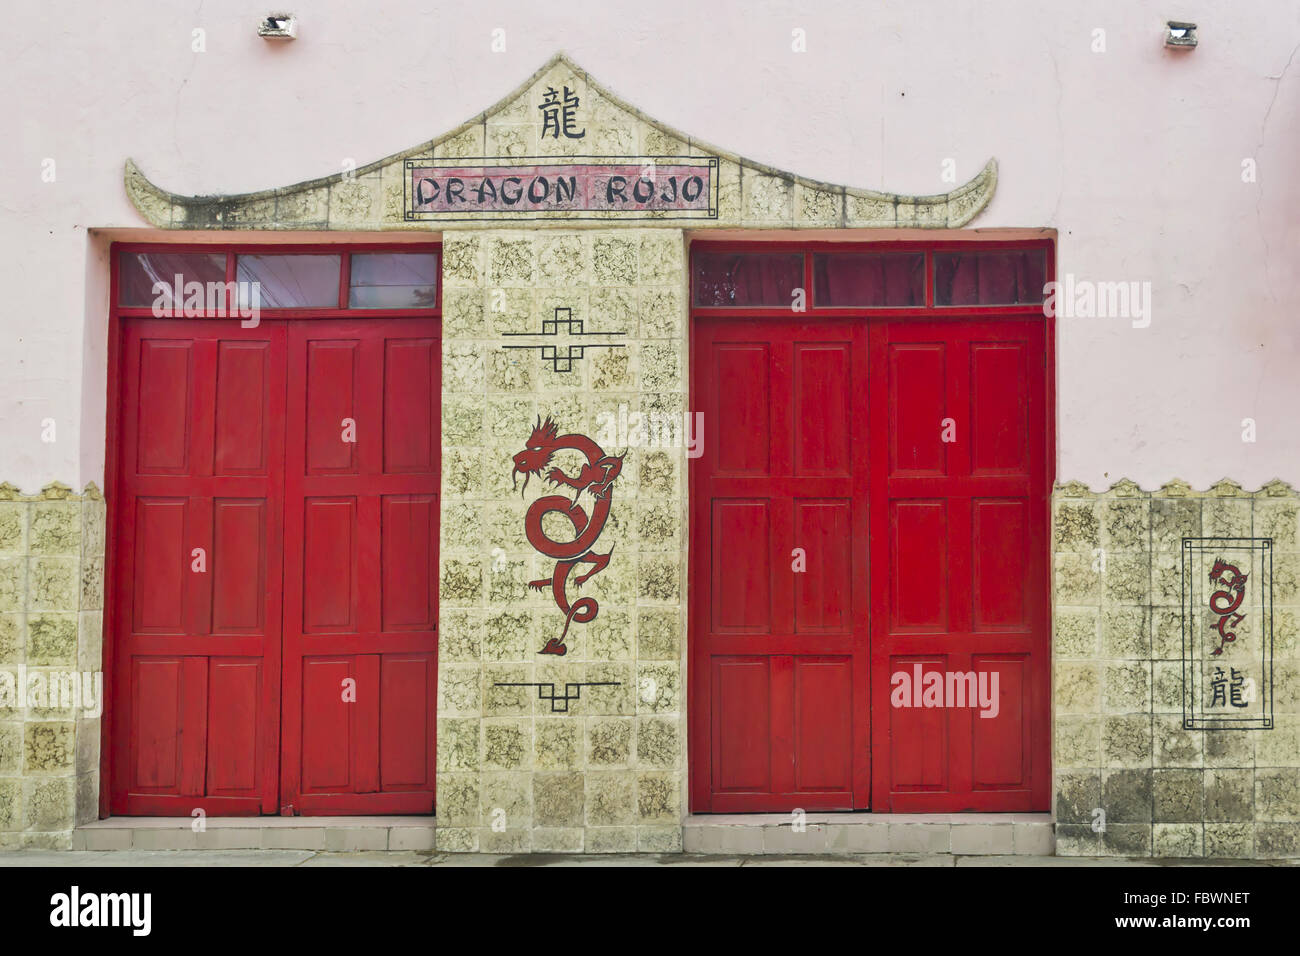 Red doors at a Chinese restaurant - Stock Image